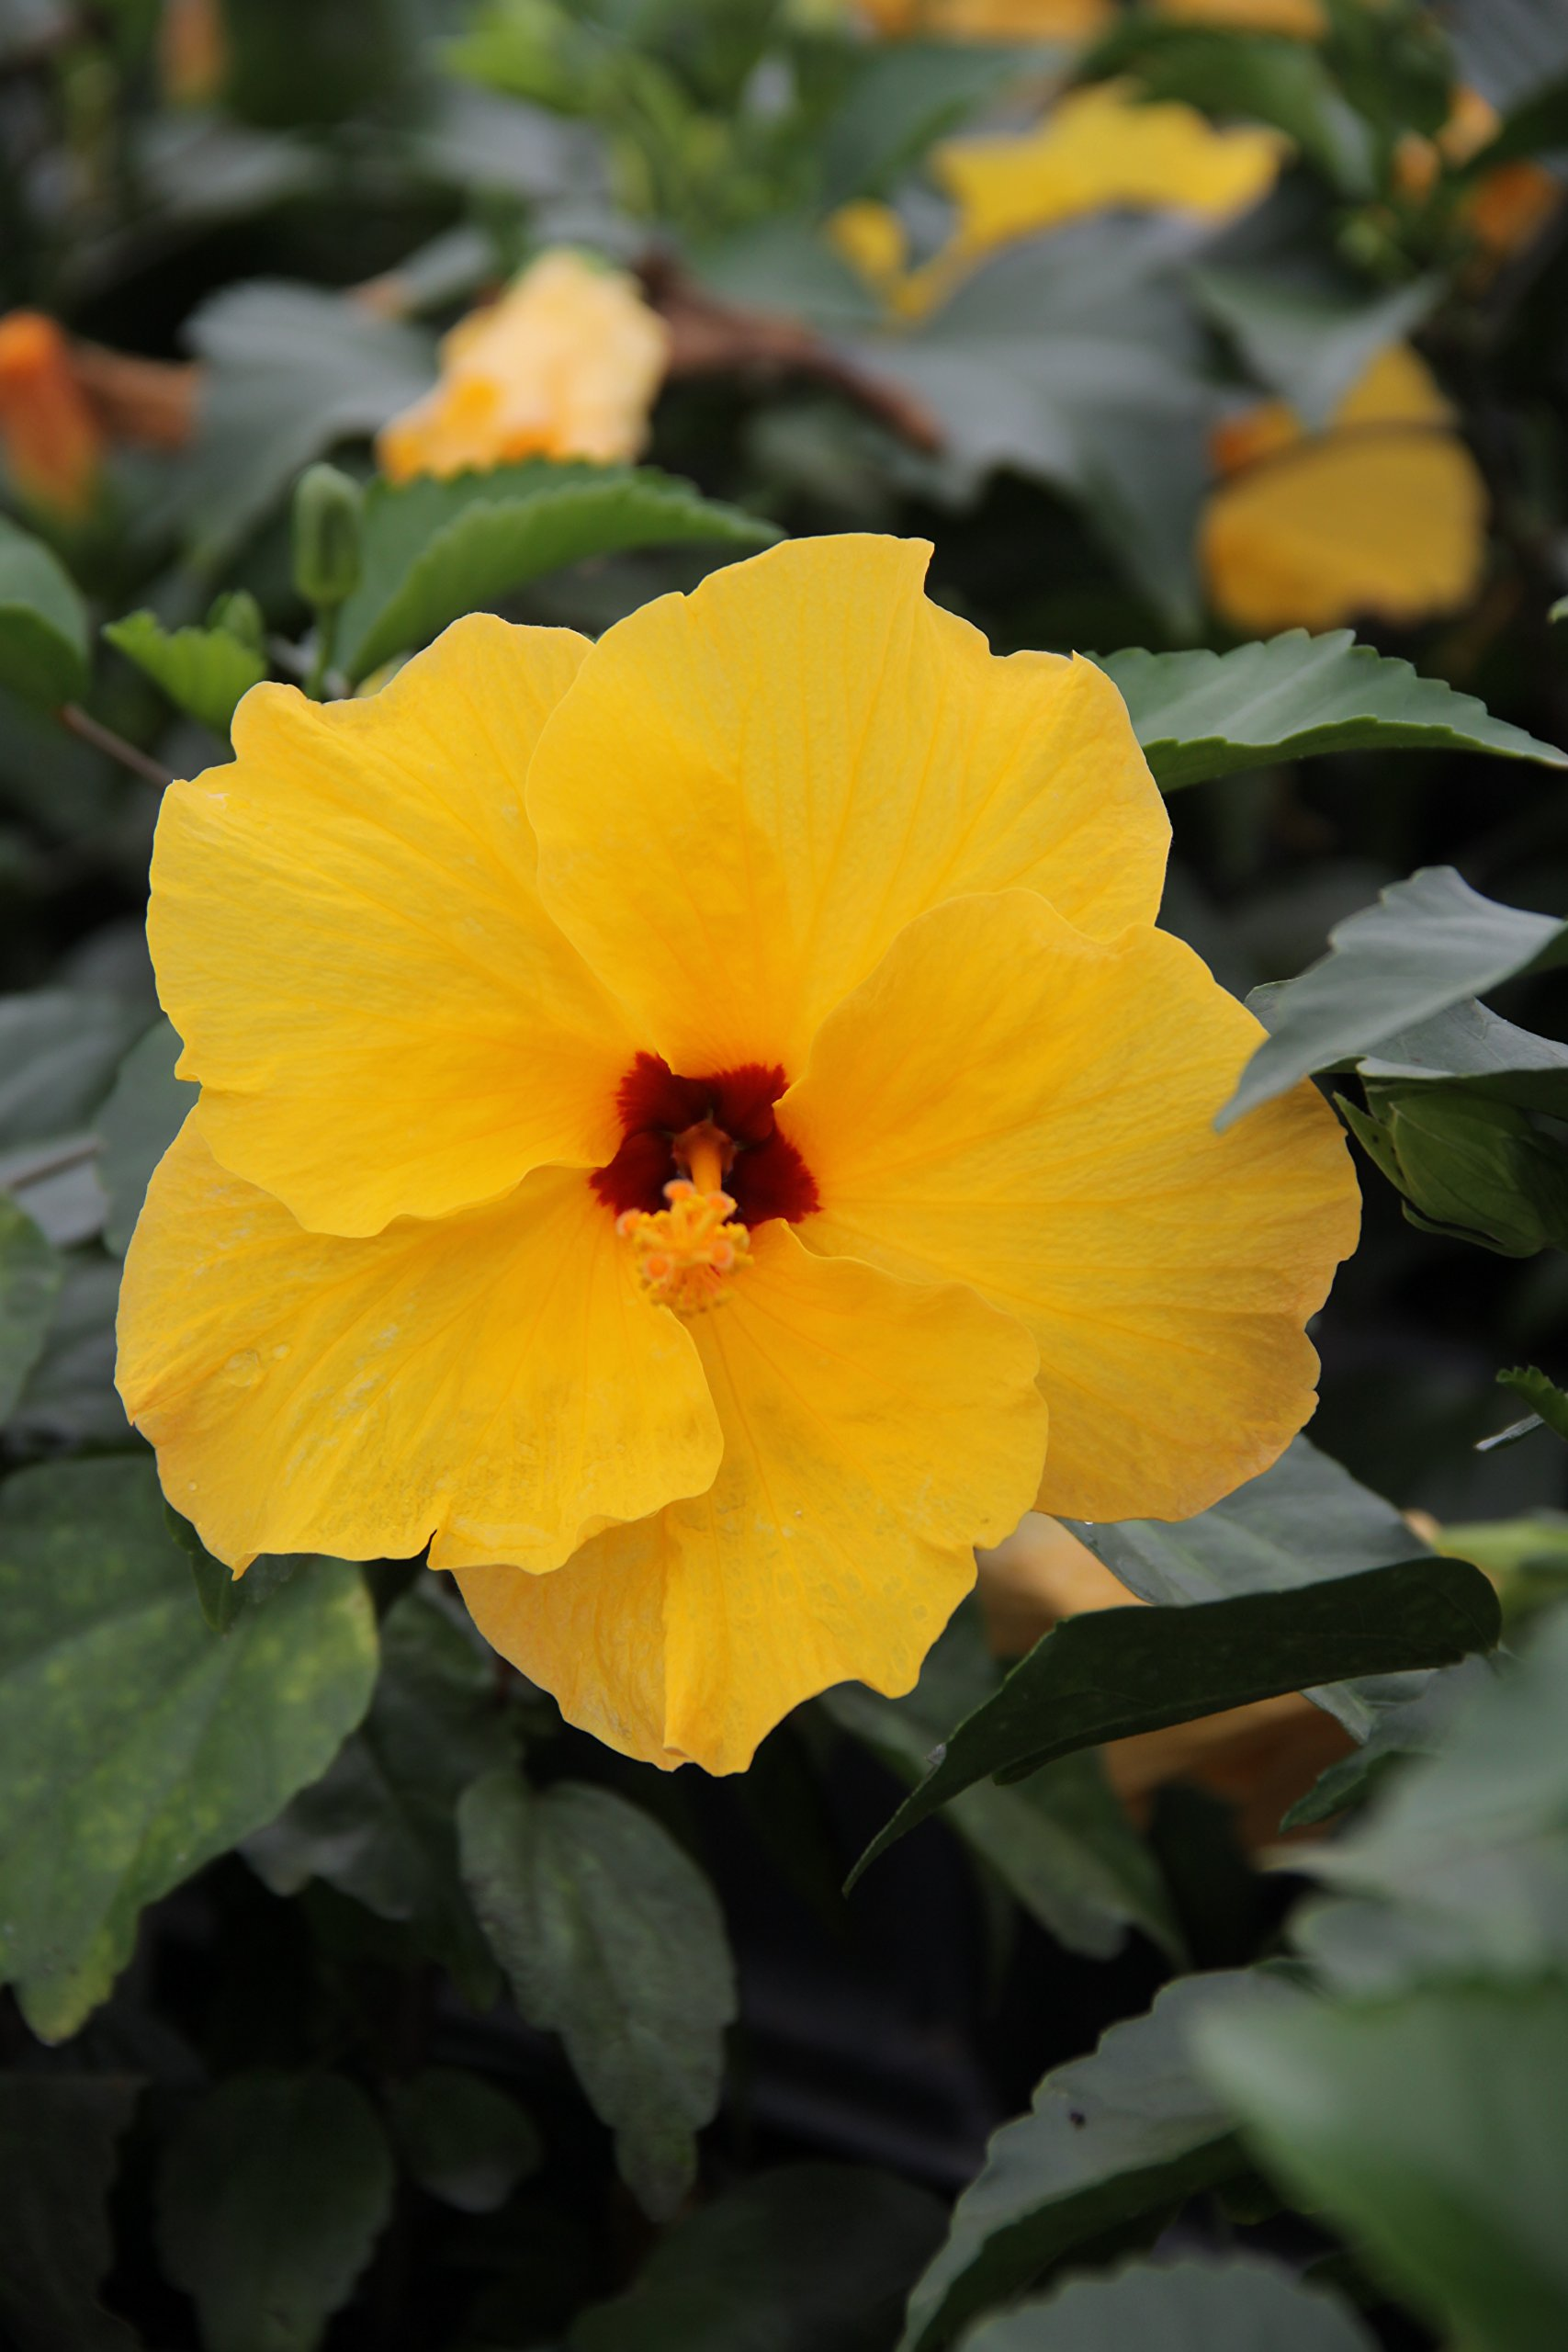 Costa Farms - Live Hibiscus Tropical Outdoor Plant in 3.00 qt Grower Pot, Yellow Flowers